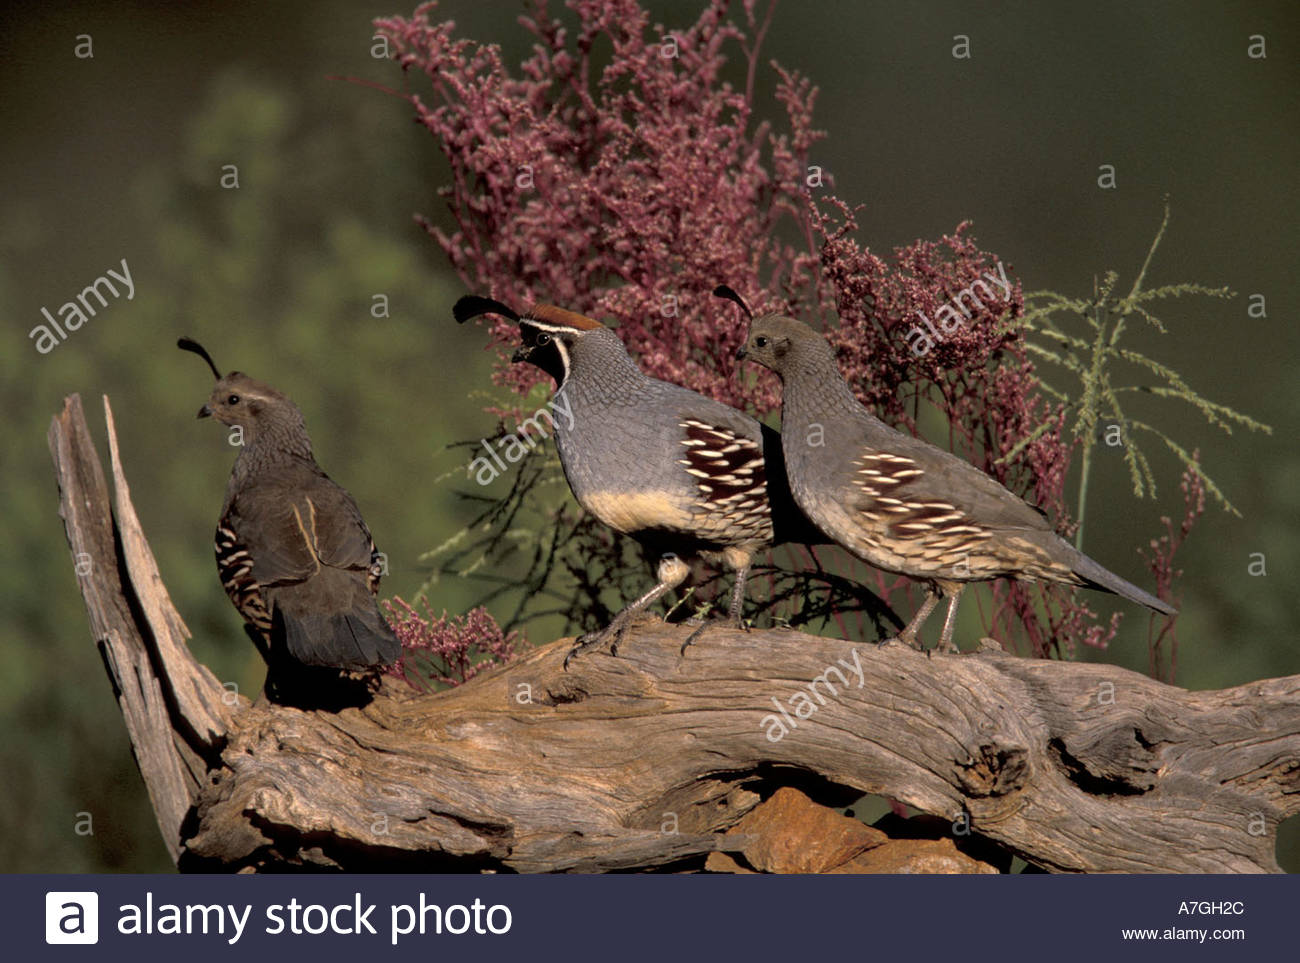 how to tell male from female quail